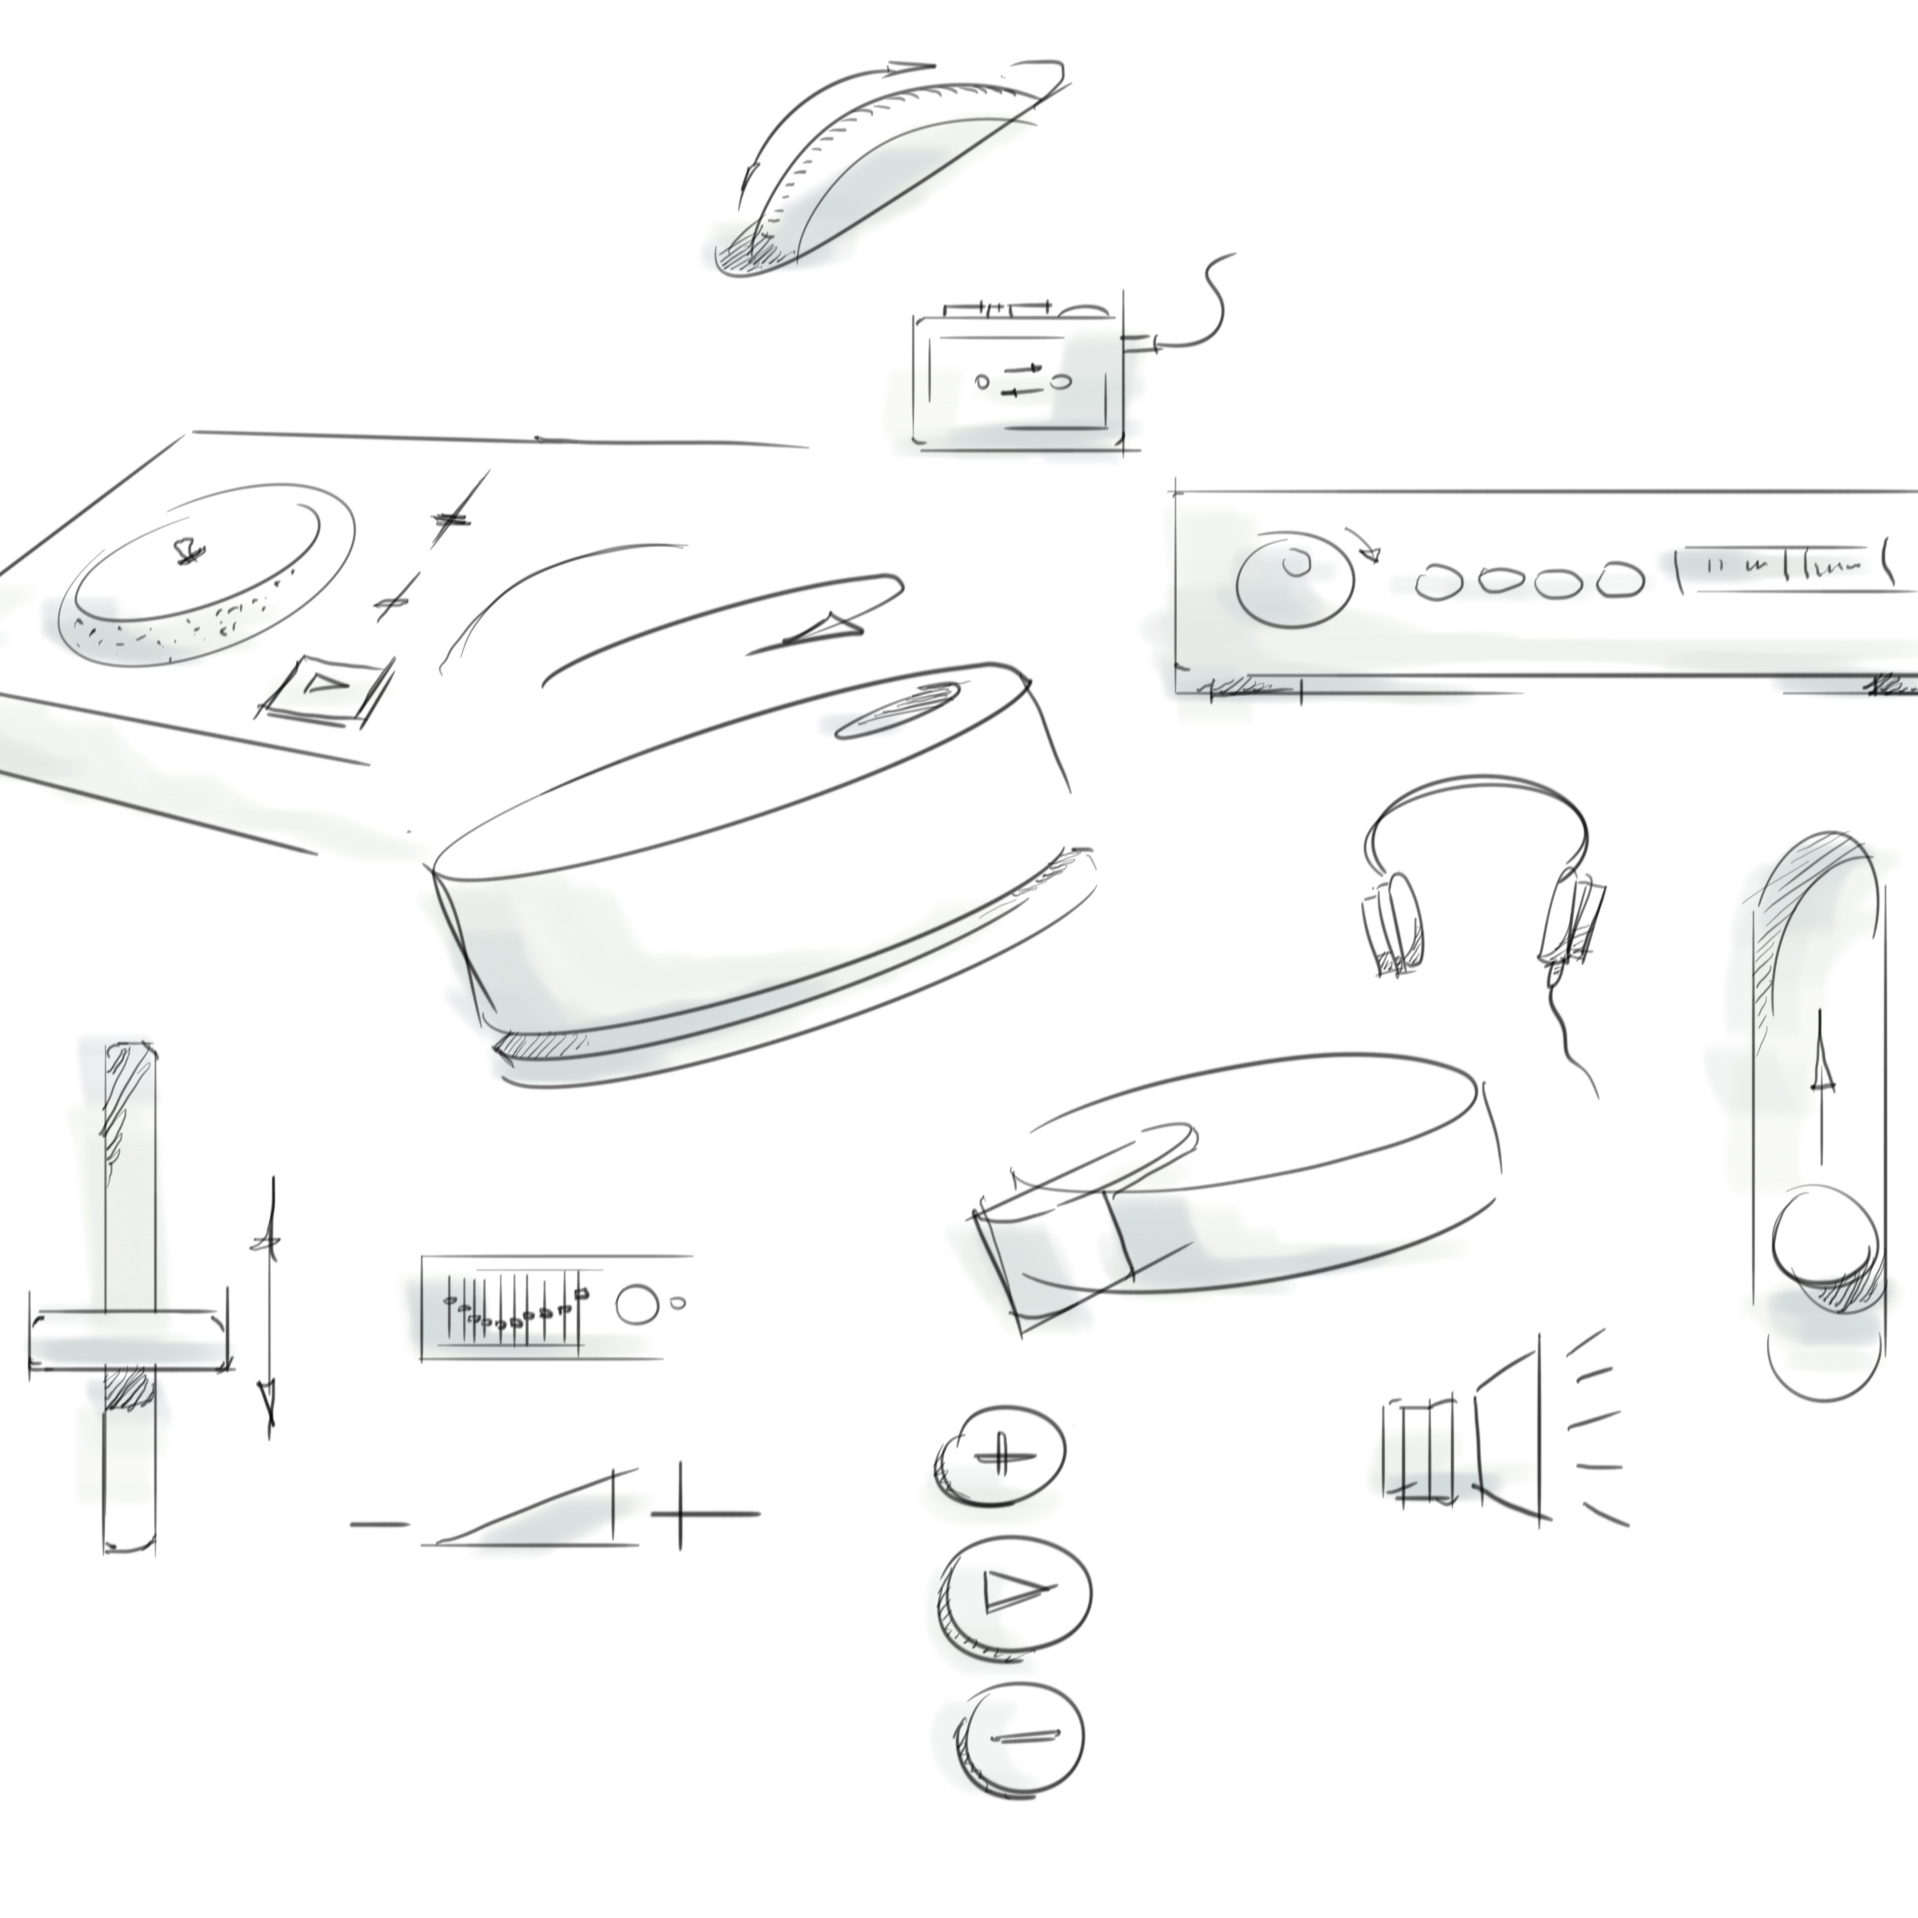 A design sketch of products in the IKEA Home smart system.